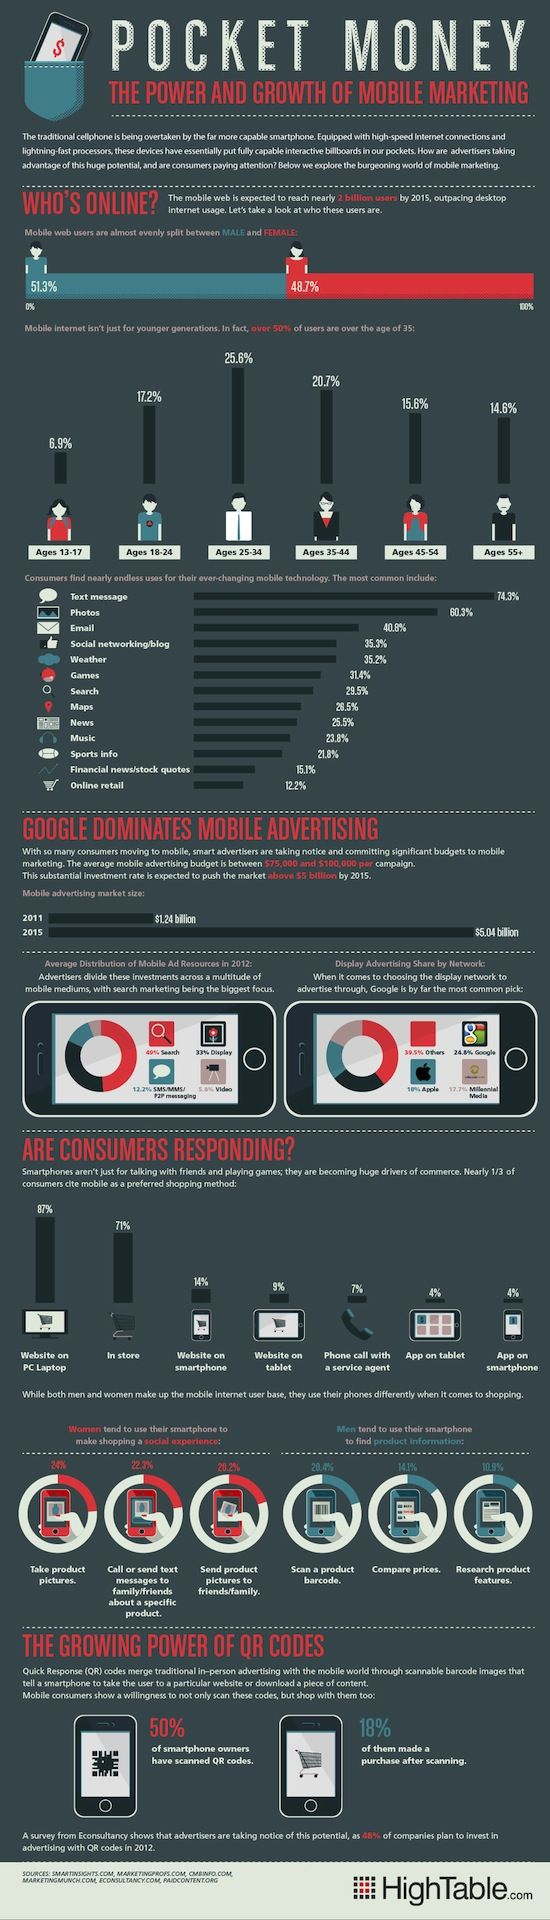 The power and growth of mobile marketing #Mobile #Marketing